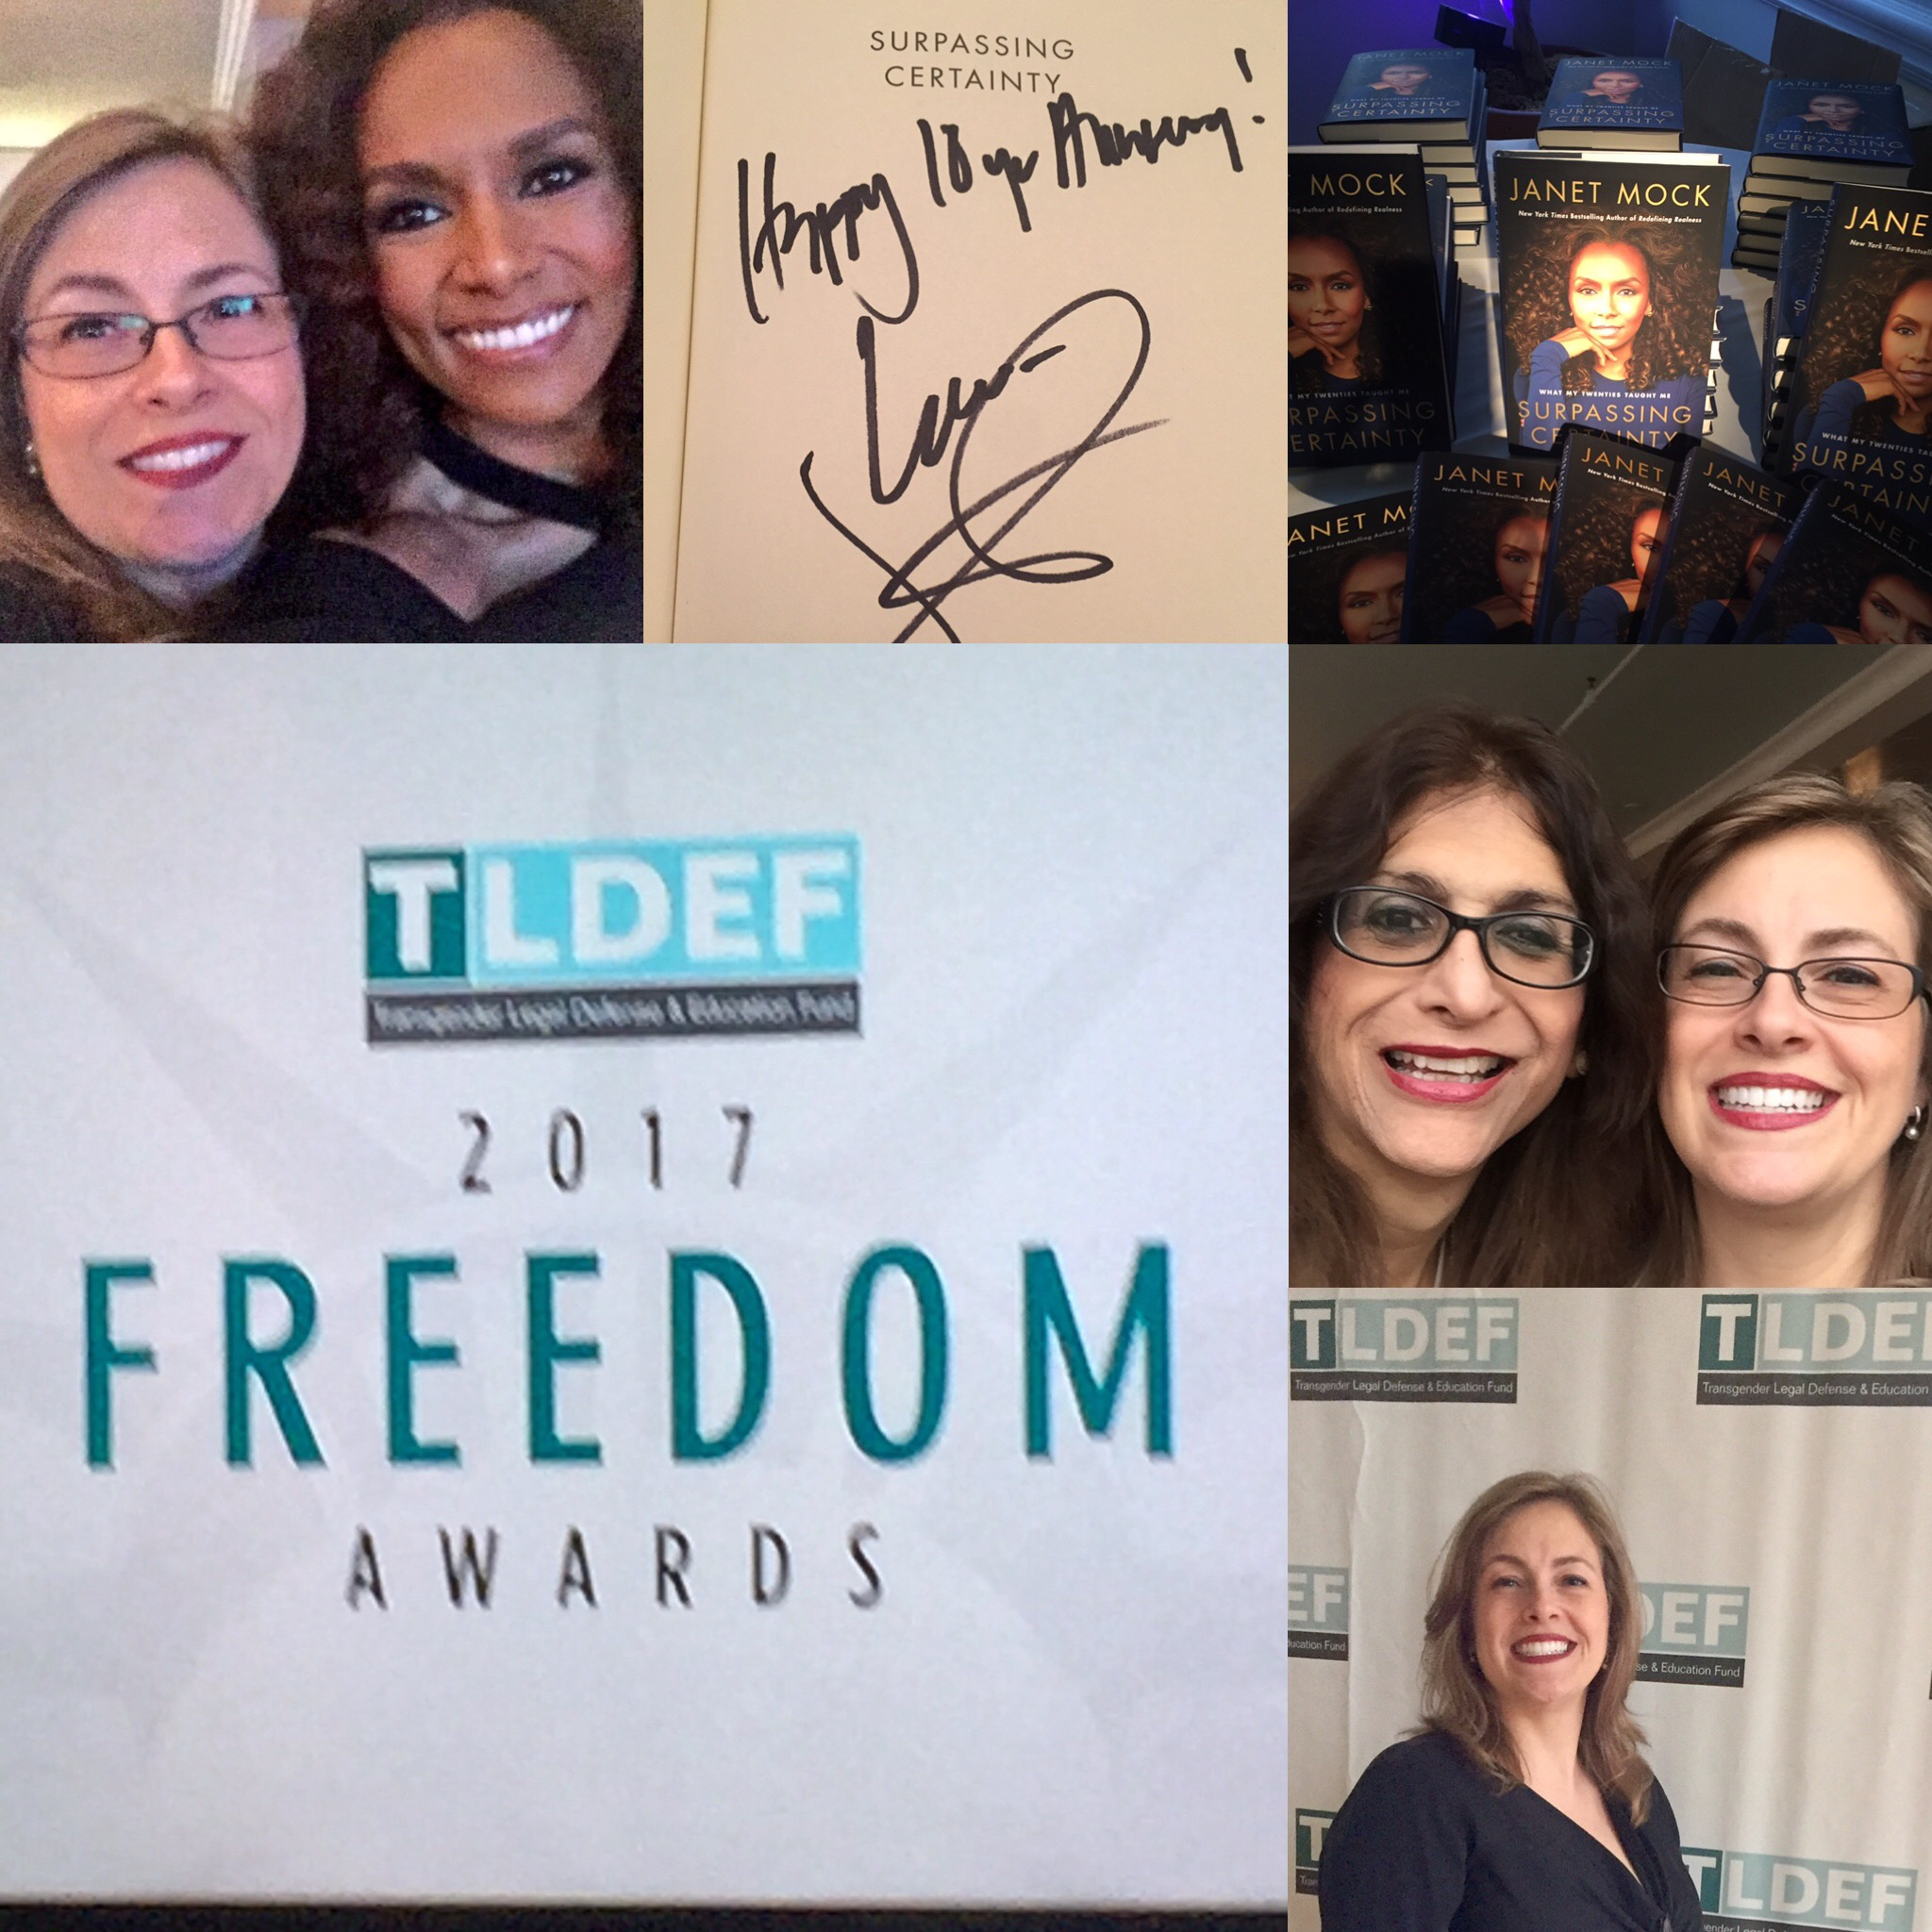 Attended the Transgender Legal Defense and Education Fund's 2017 Freedom Awards